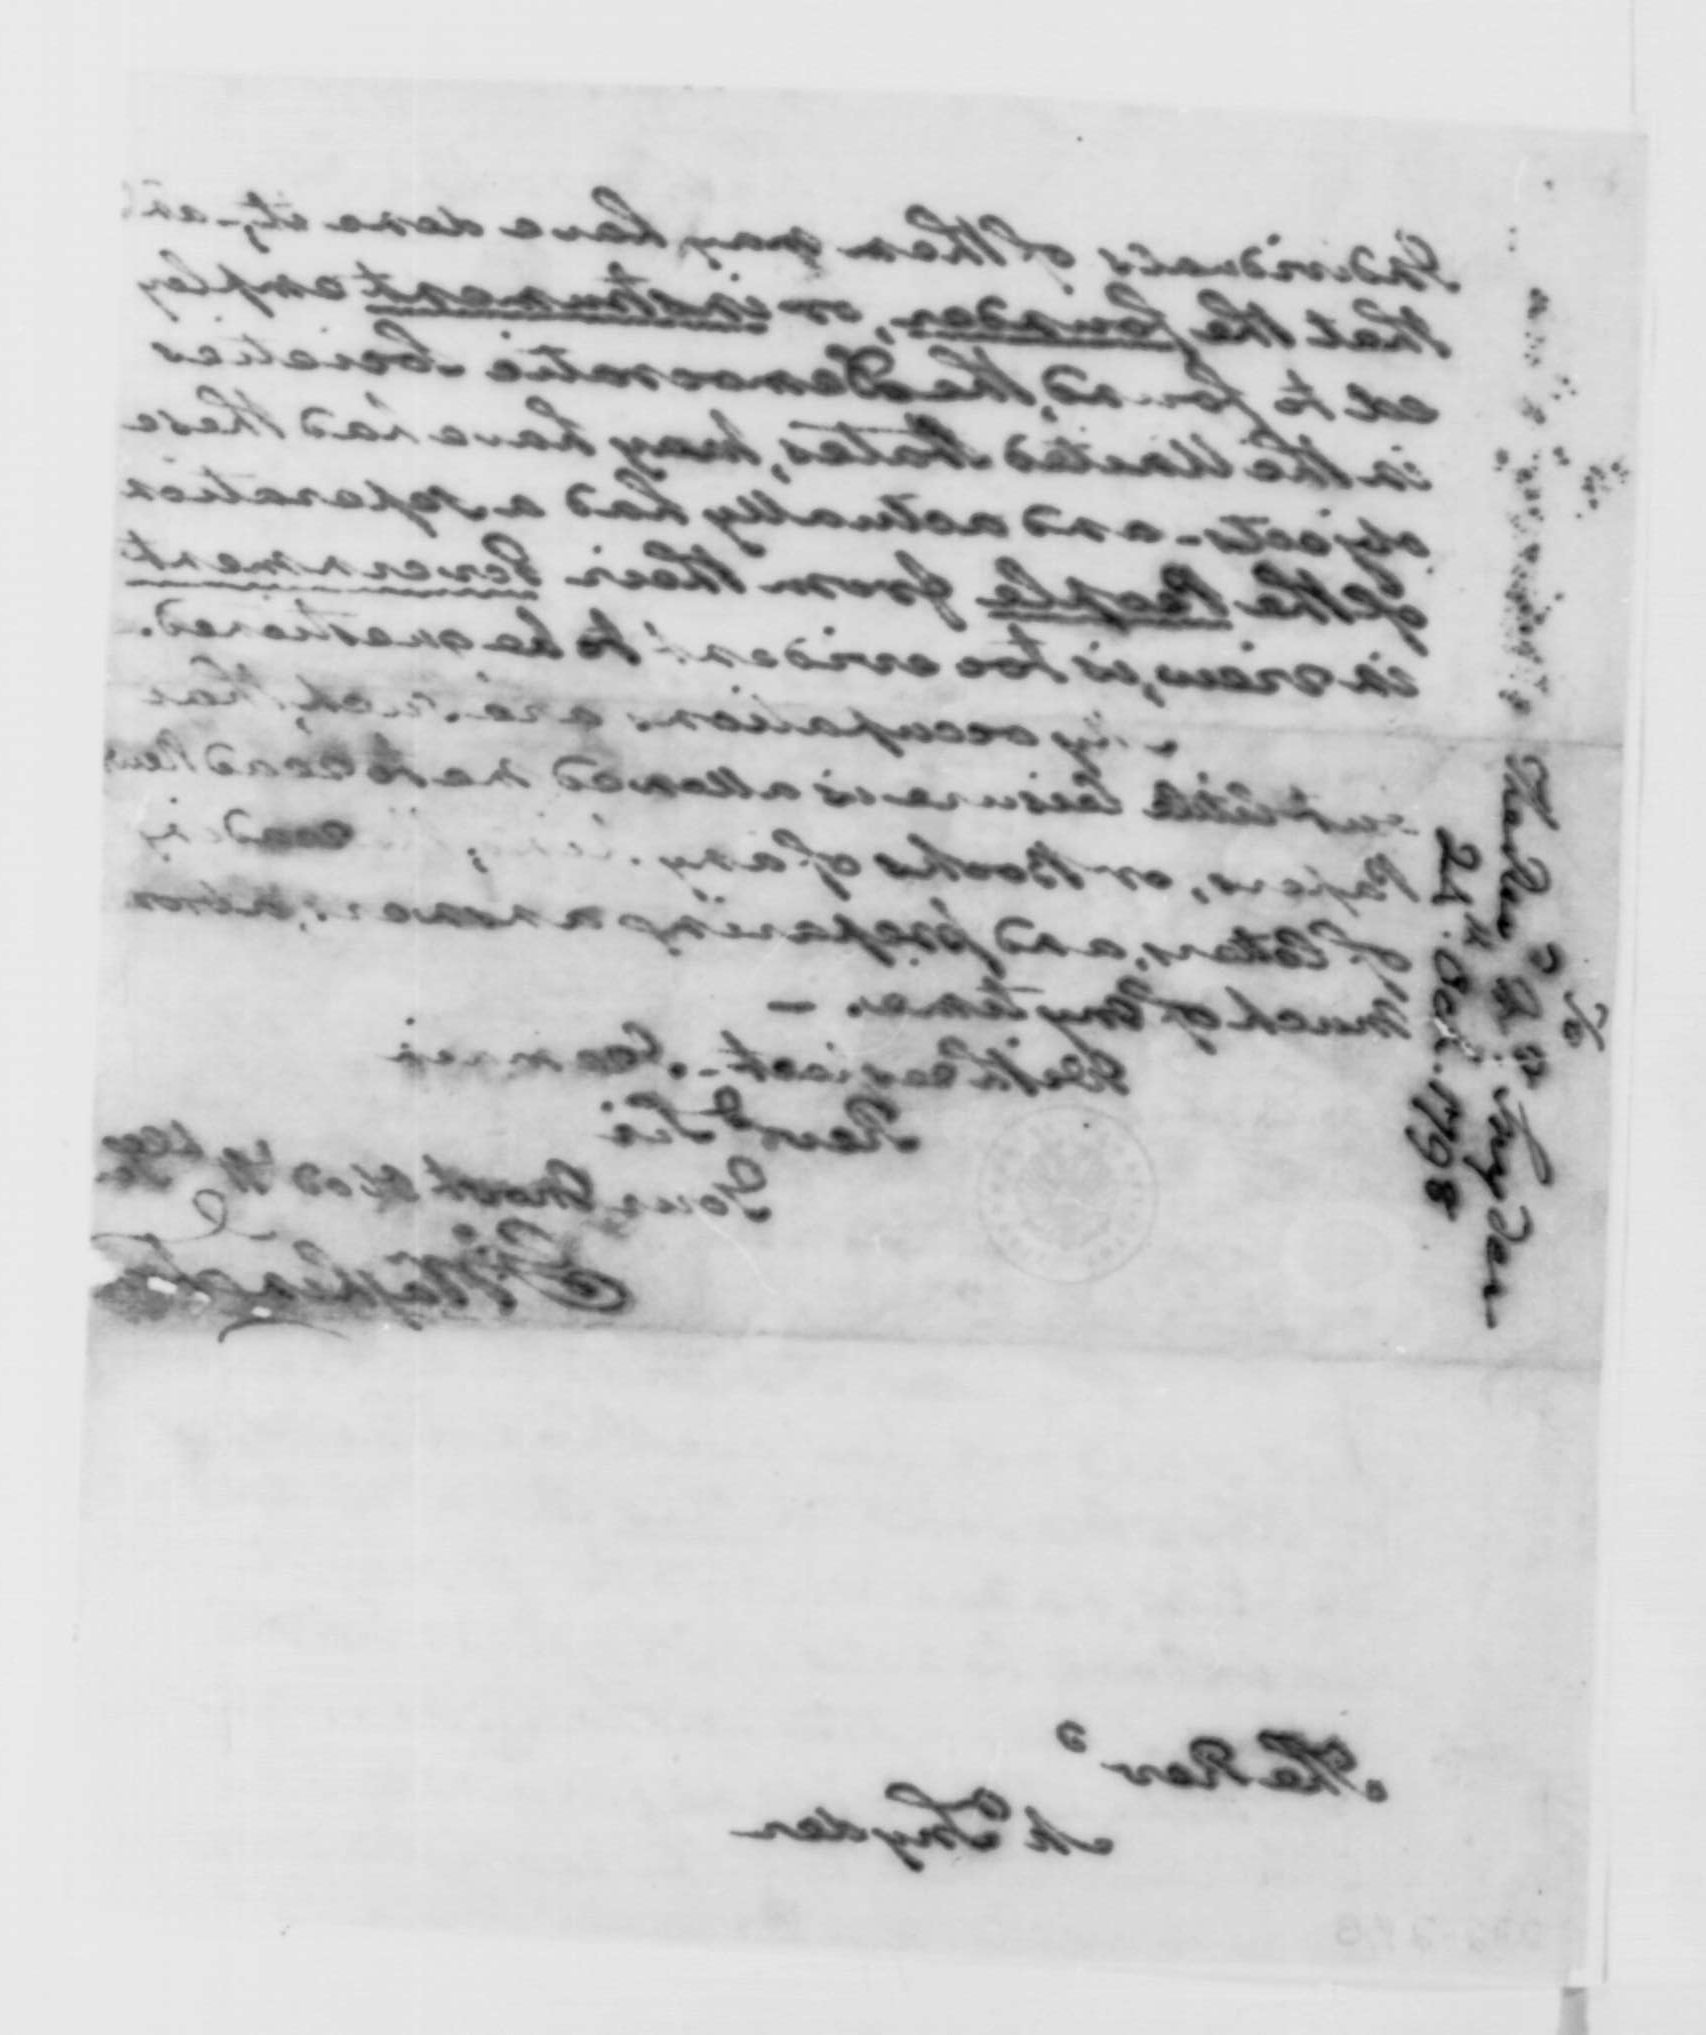 George Washington Illuminati Letter Oct 24th, 1798 - image 4 of 4